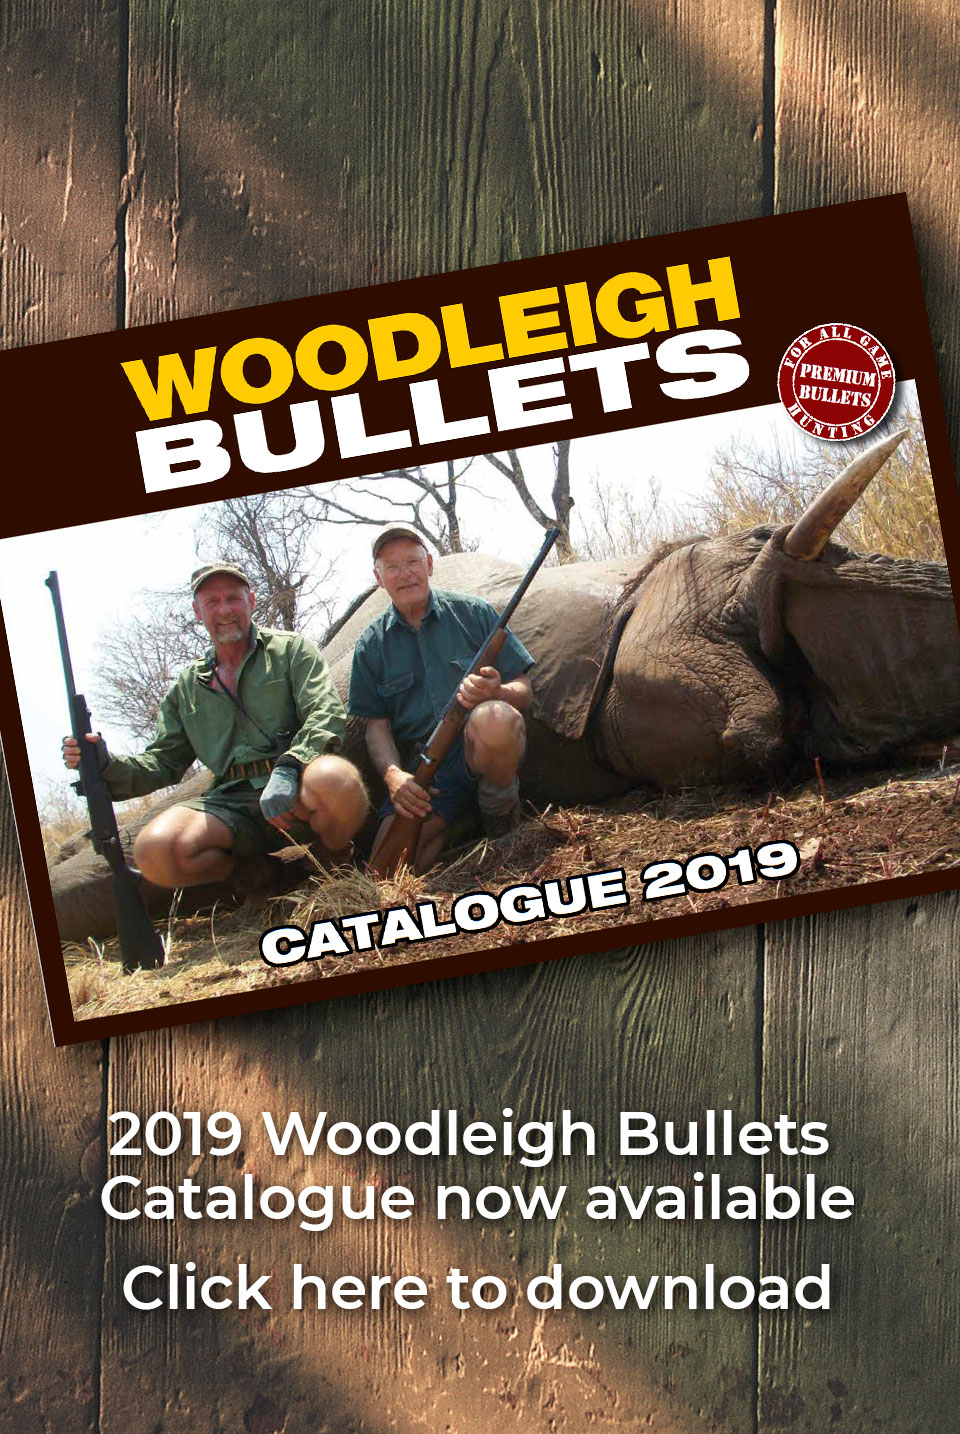 Premium Bullets for all Game - Woodleigh Bullets